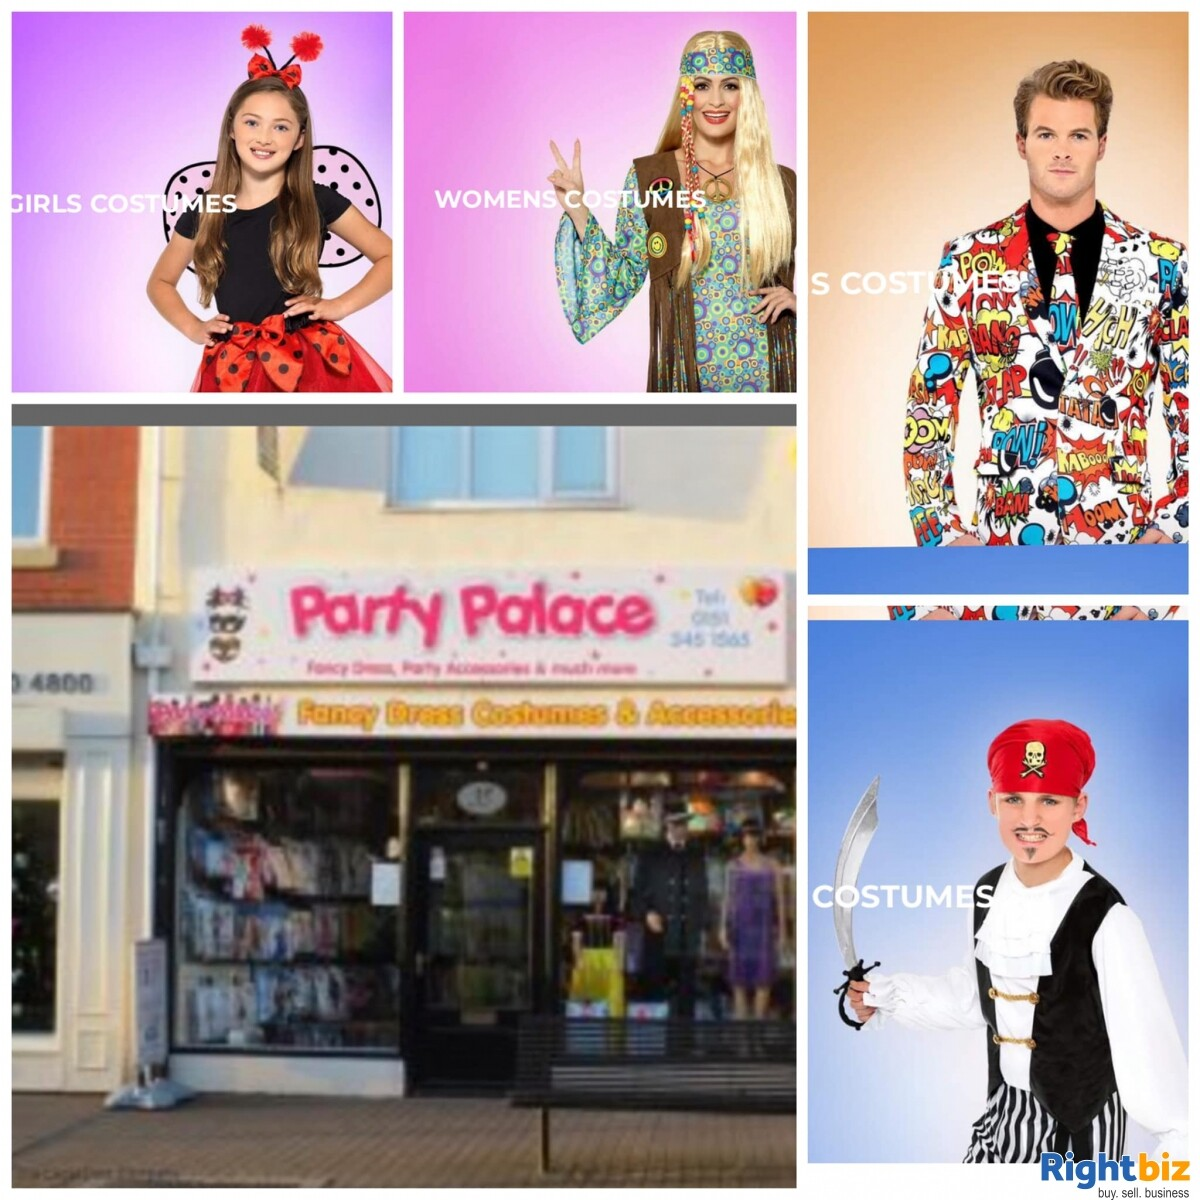 Profitable And Growing Costume Shop Business For Sale - Image 1